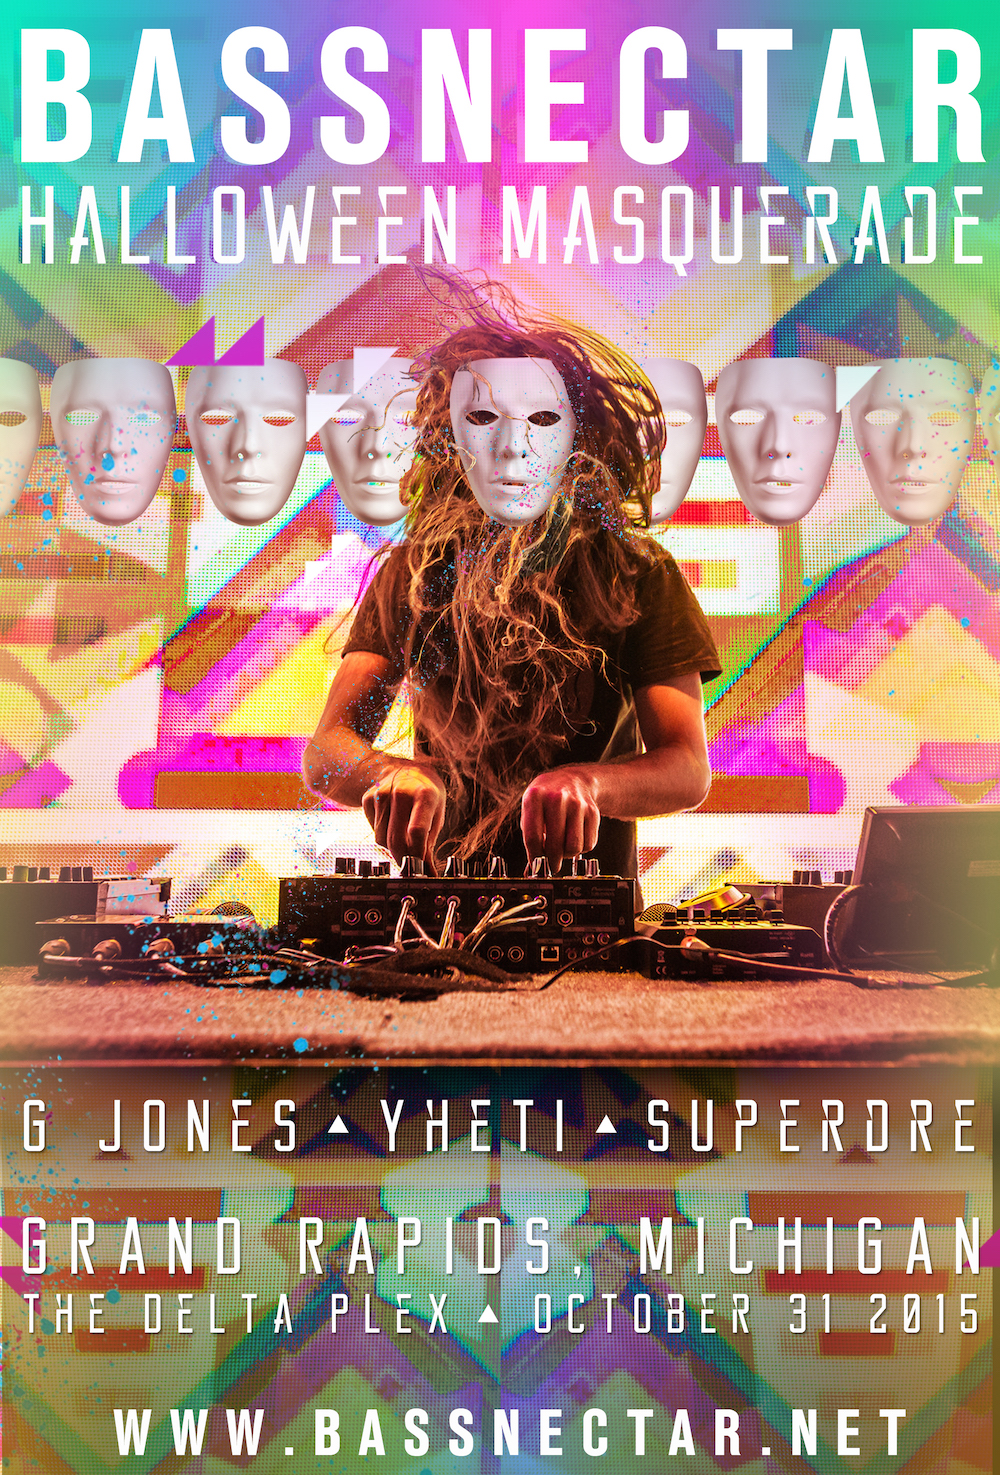 Bassnectar Halloween Masquerade 2015 in Grand Rapids, Michigan